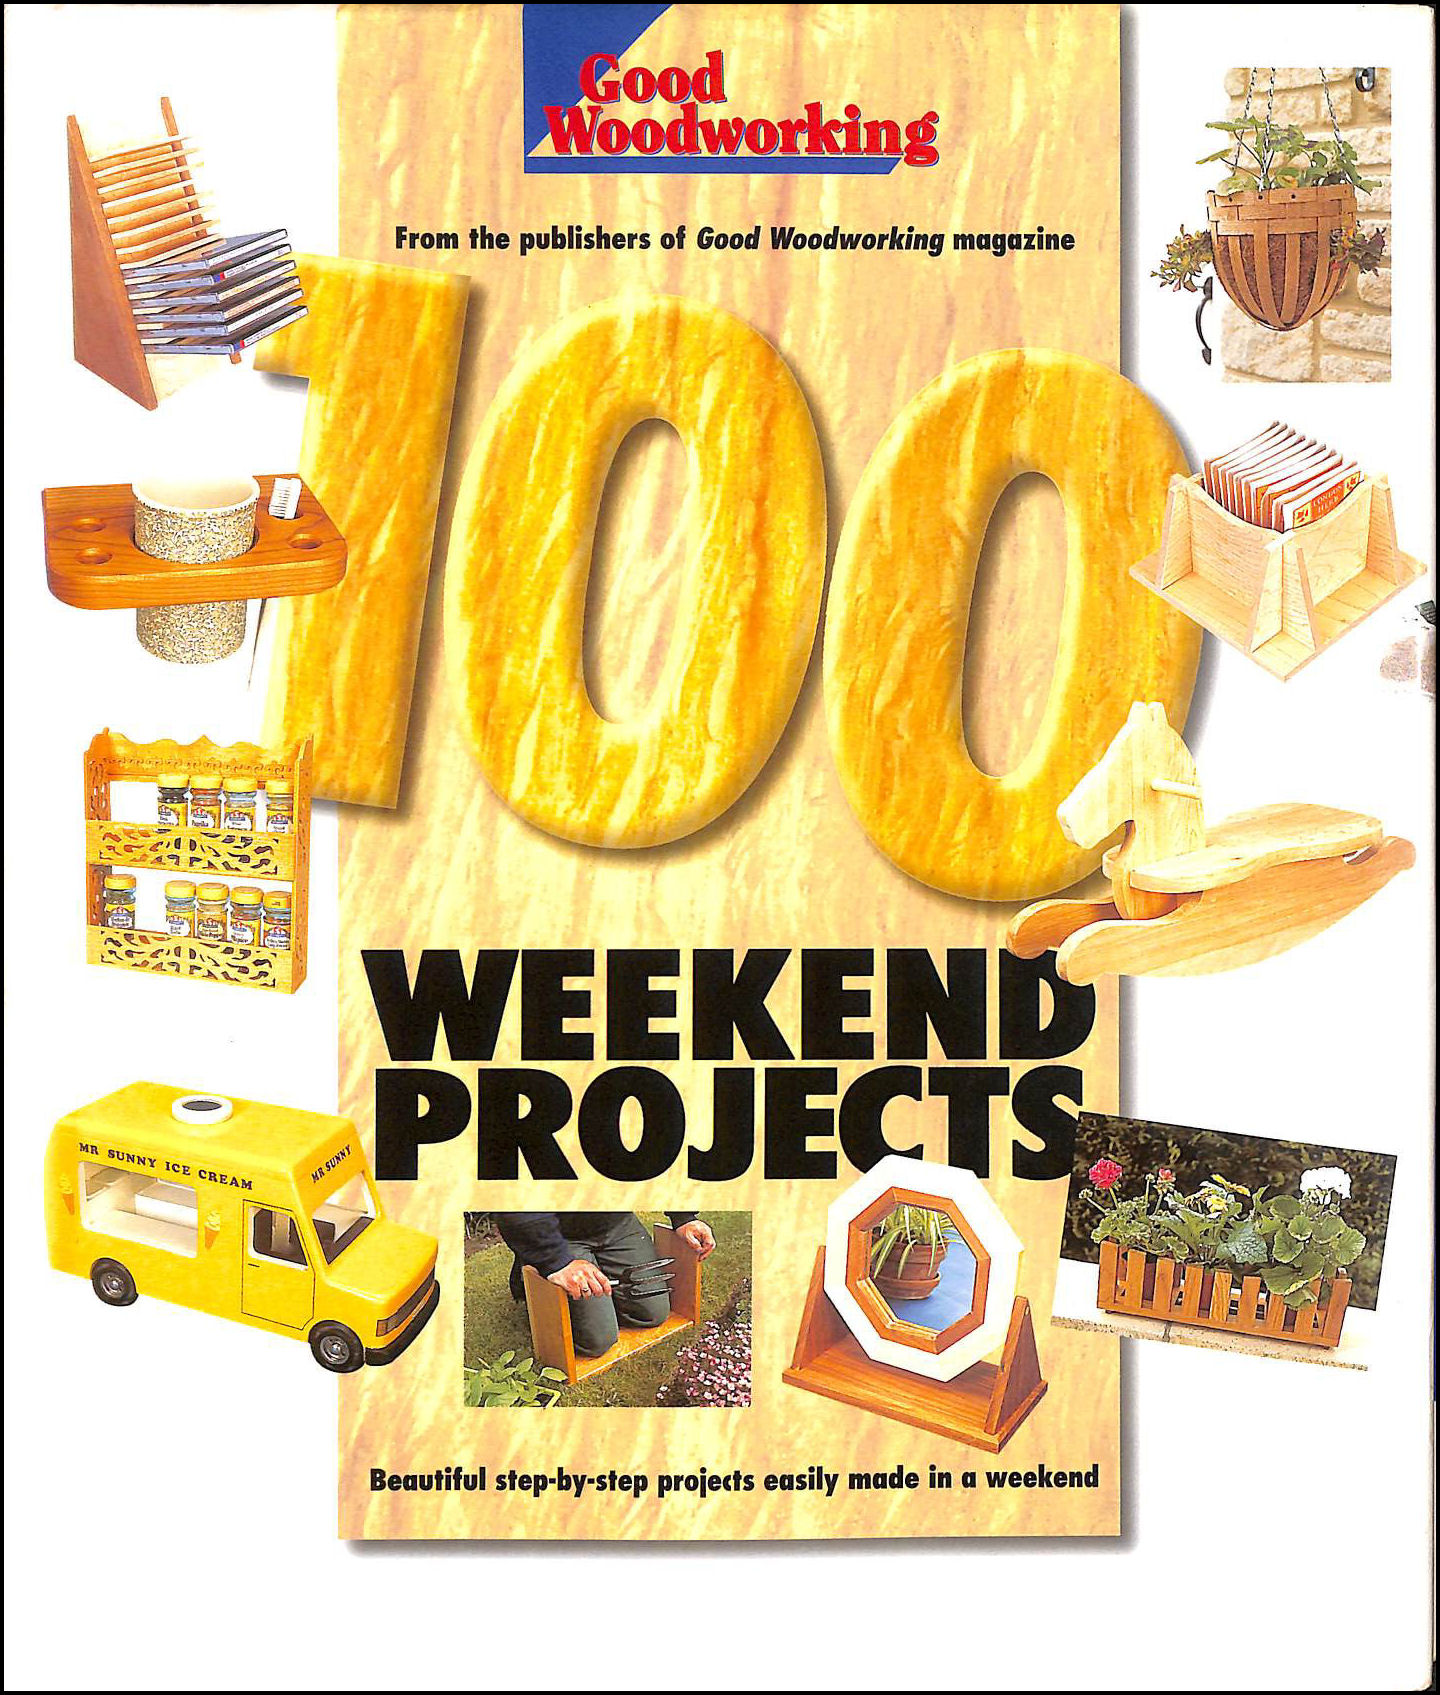 Image for Good Woodworking Magazine's 100 Weekend Projects Beautiful Step-by-step Projects Easily Made in a Weekend